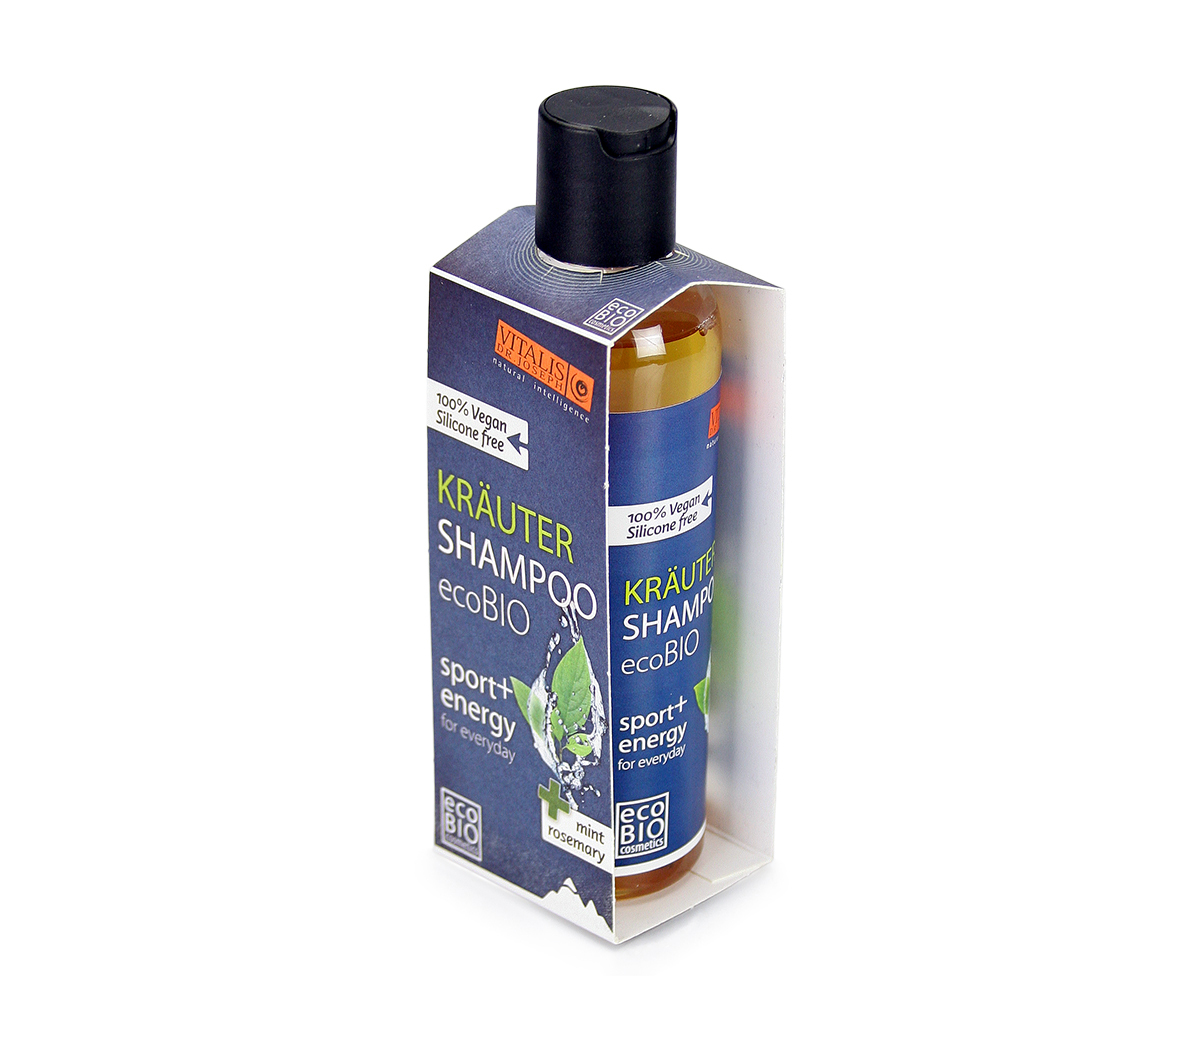 Kräutershampoo mint & rosemary - sport & energy, 200 ml